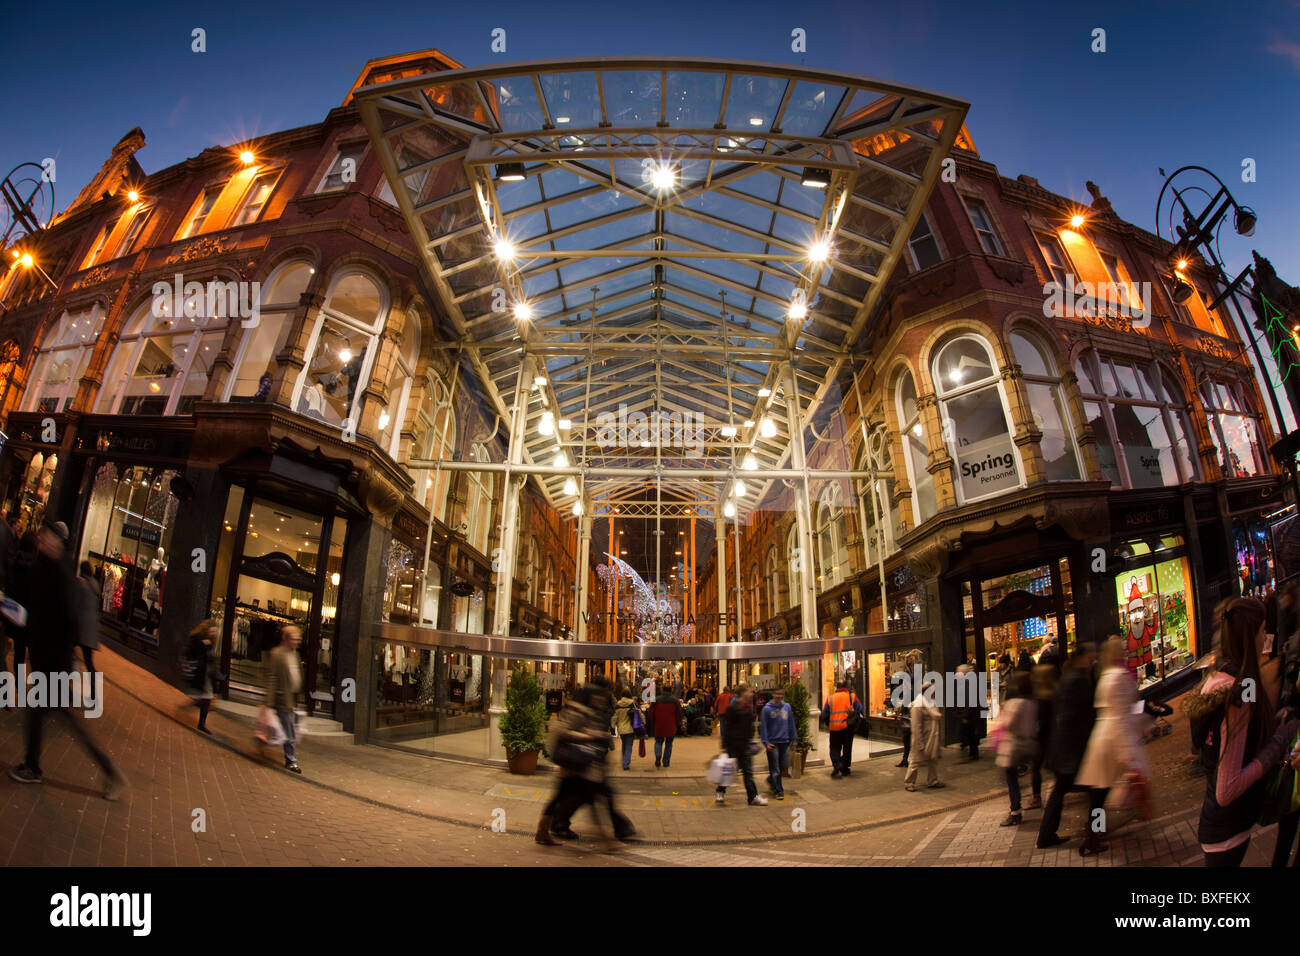 UK, England, Yorkshire, Leeds, Briggate, Victoria Quarter, Queen Victoria Street entrance at Christmas - Stock Image